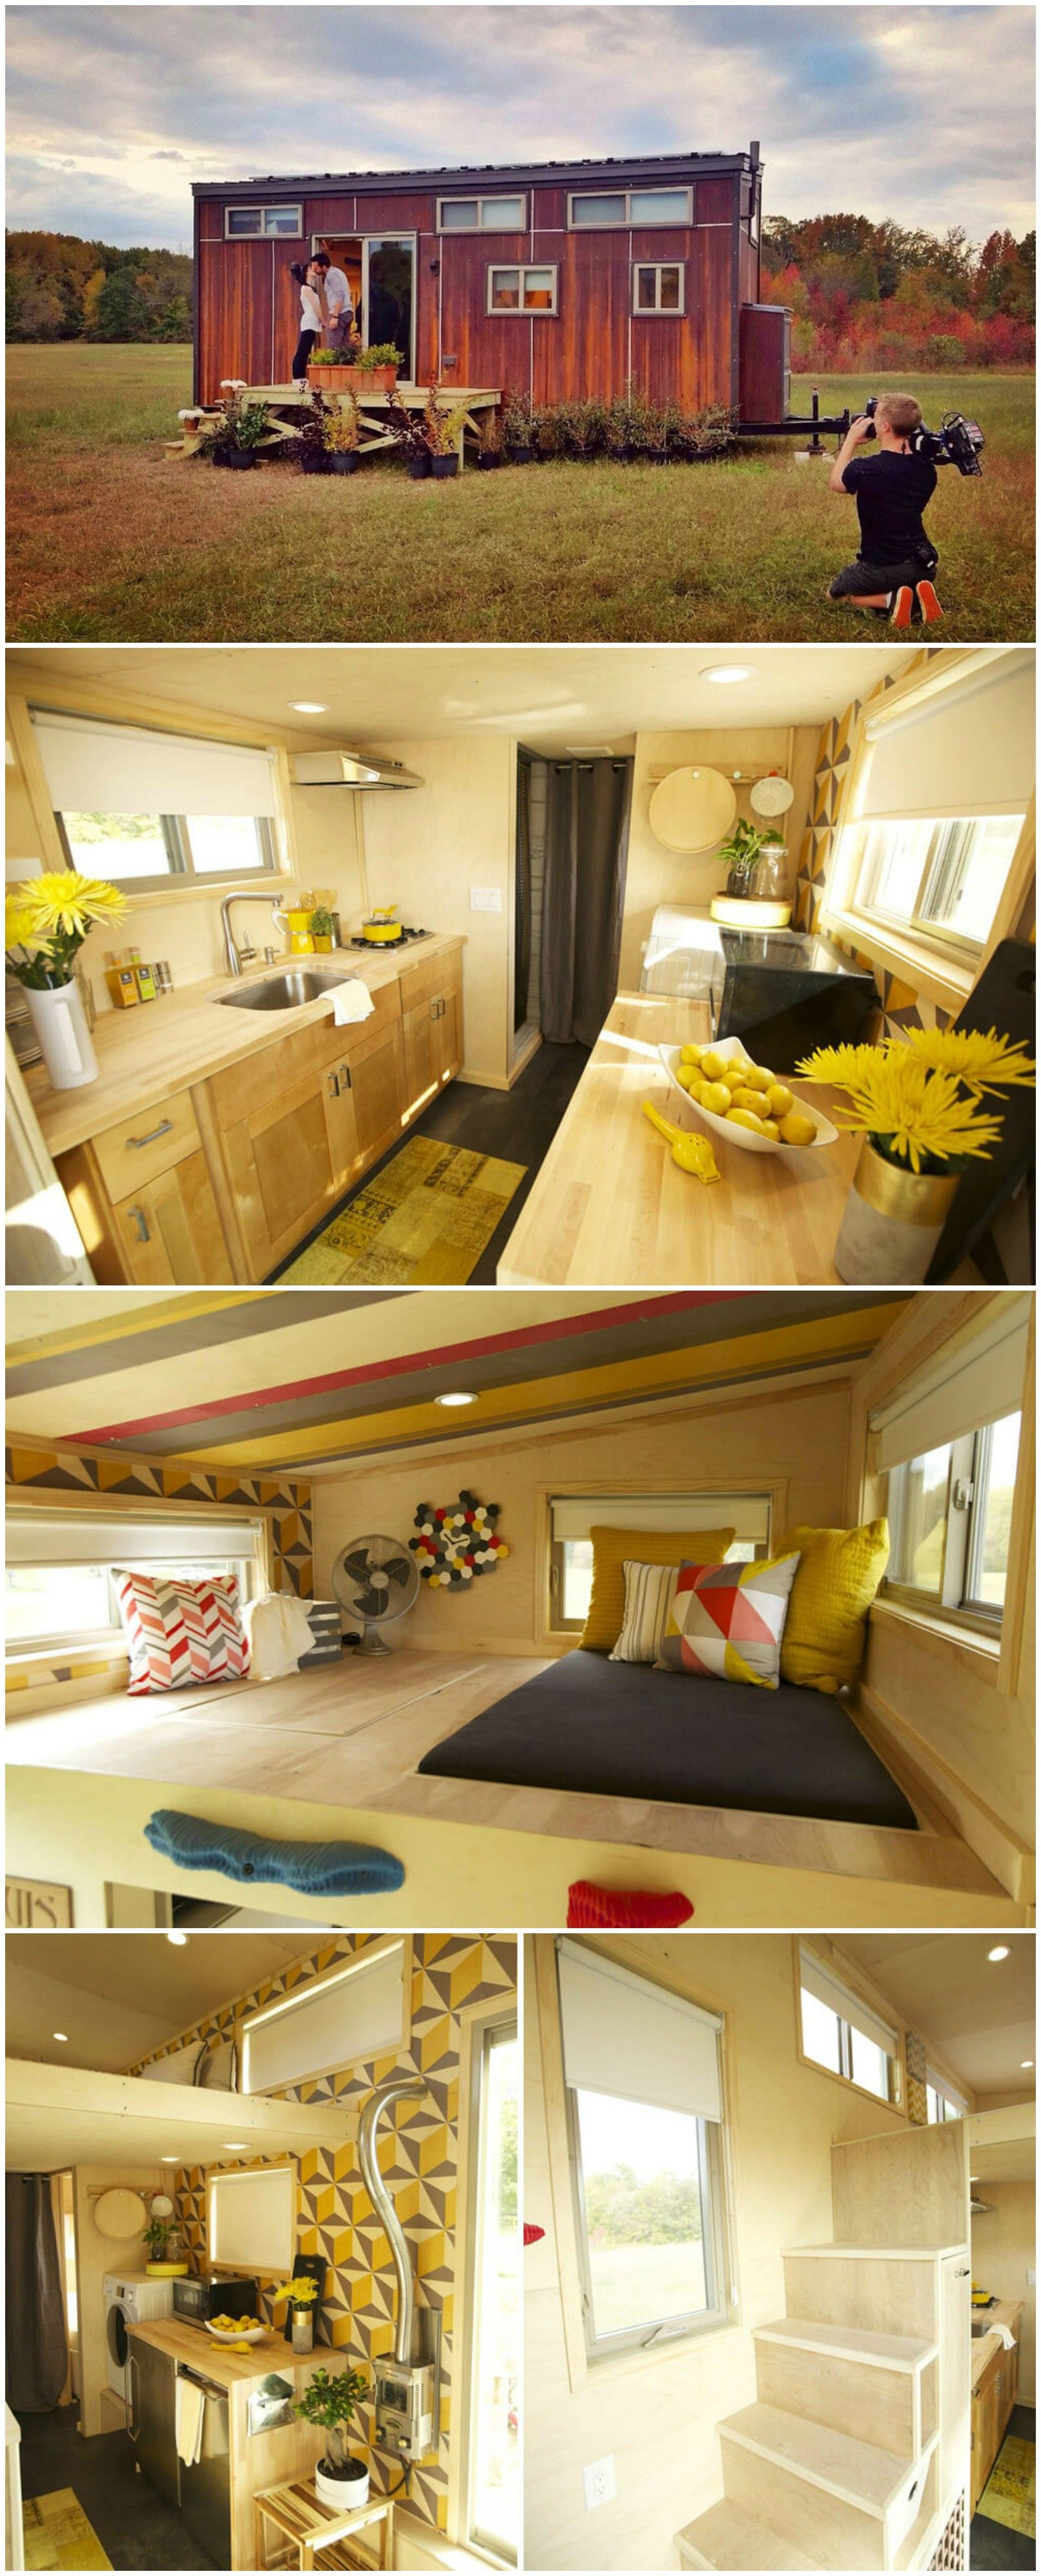 Z Huis is an awesome tiny house built